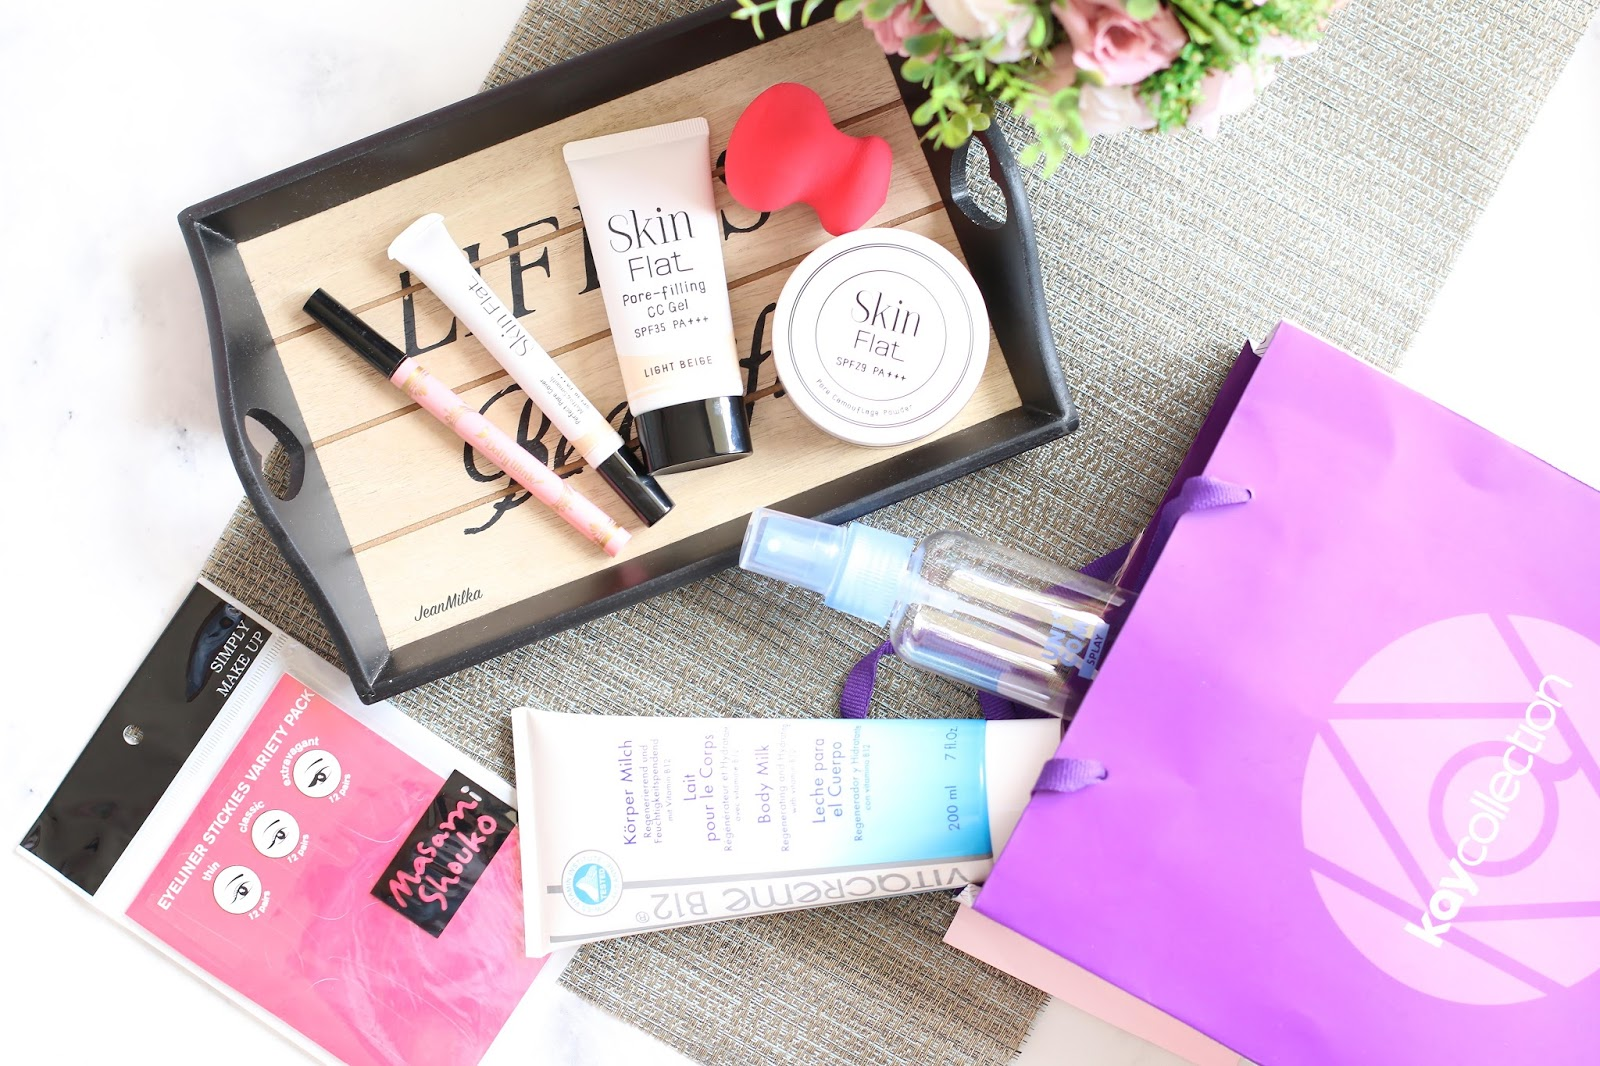 kay collection, kay collection indonesia, voucher kay collection, diskon kay collection, makeup, beauty, beauty haul